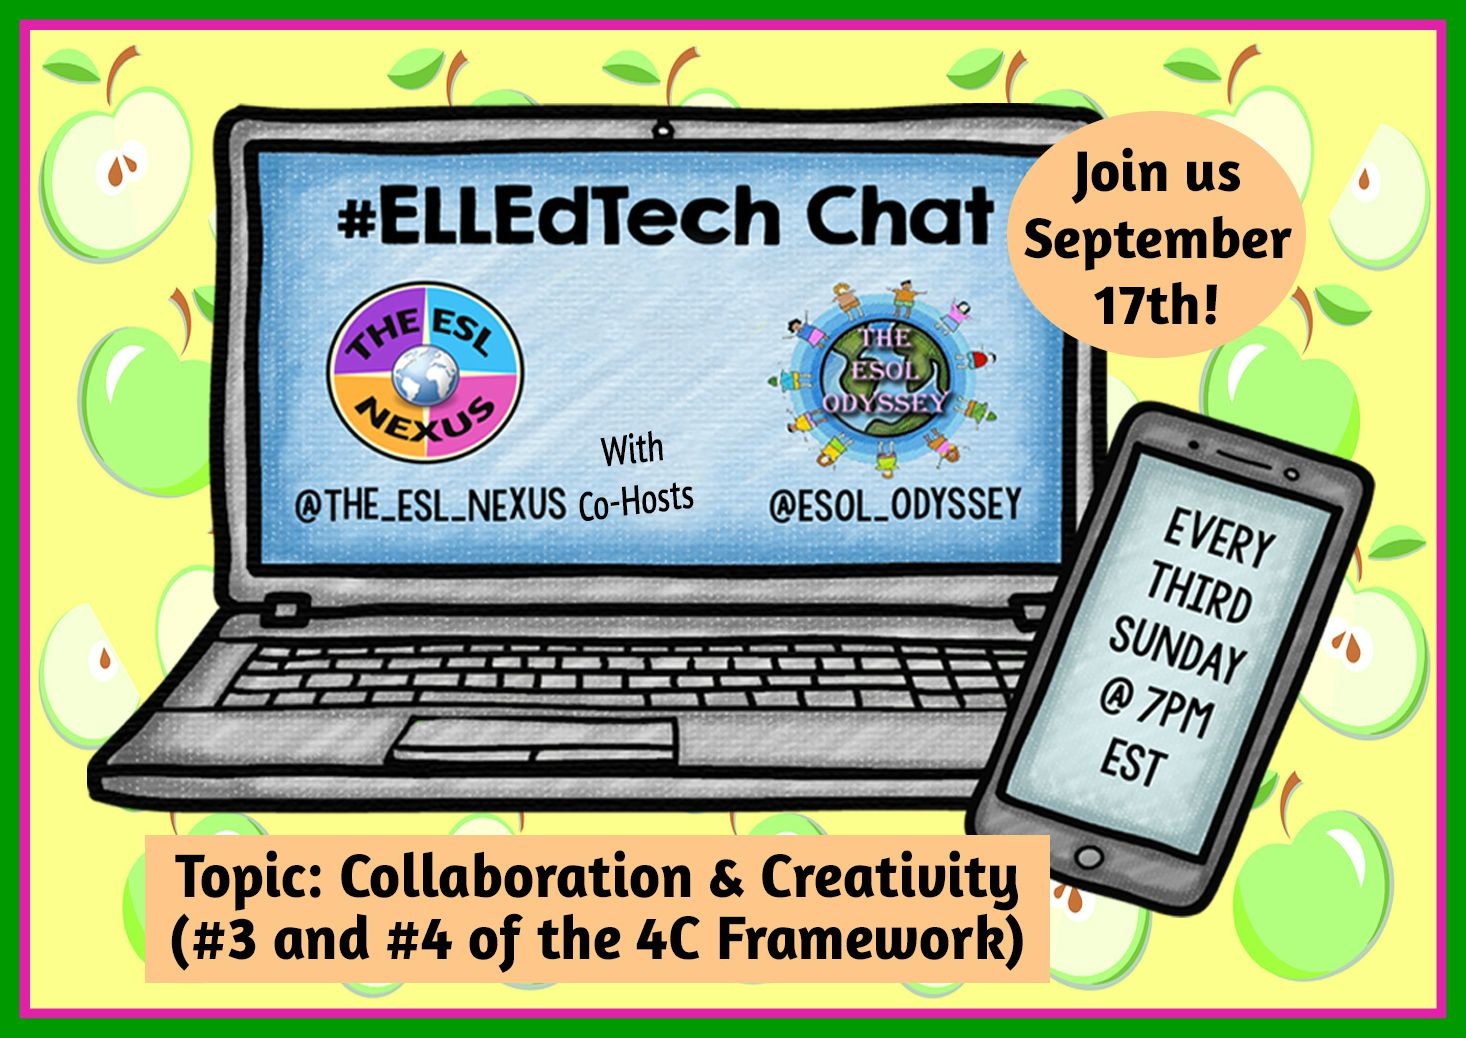 Come join the next #ELLEdTech Twitter chat on September 17th to discuss the 4C topics of Collaboration & Communication.| The ESL Nexus